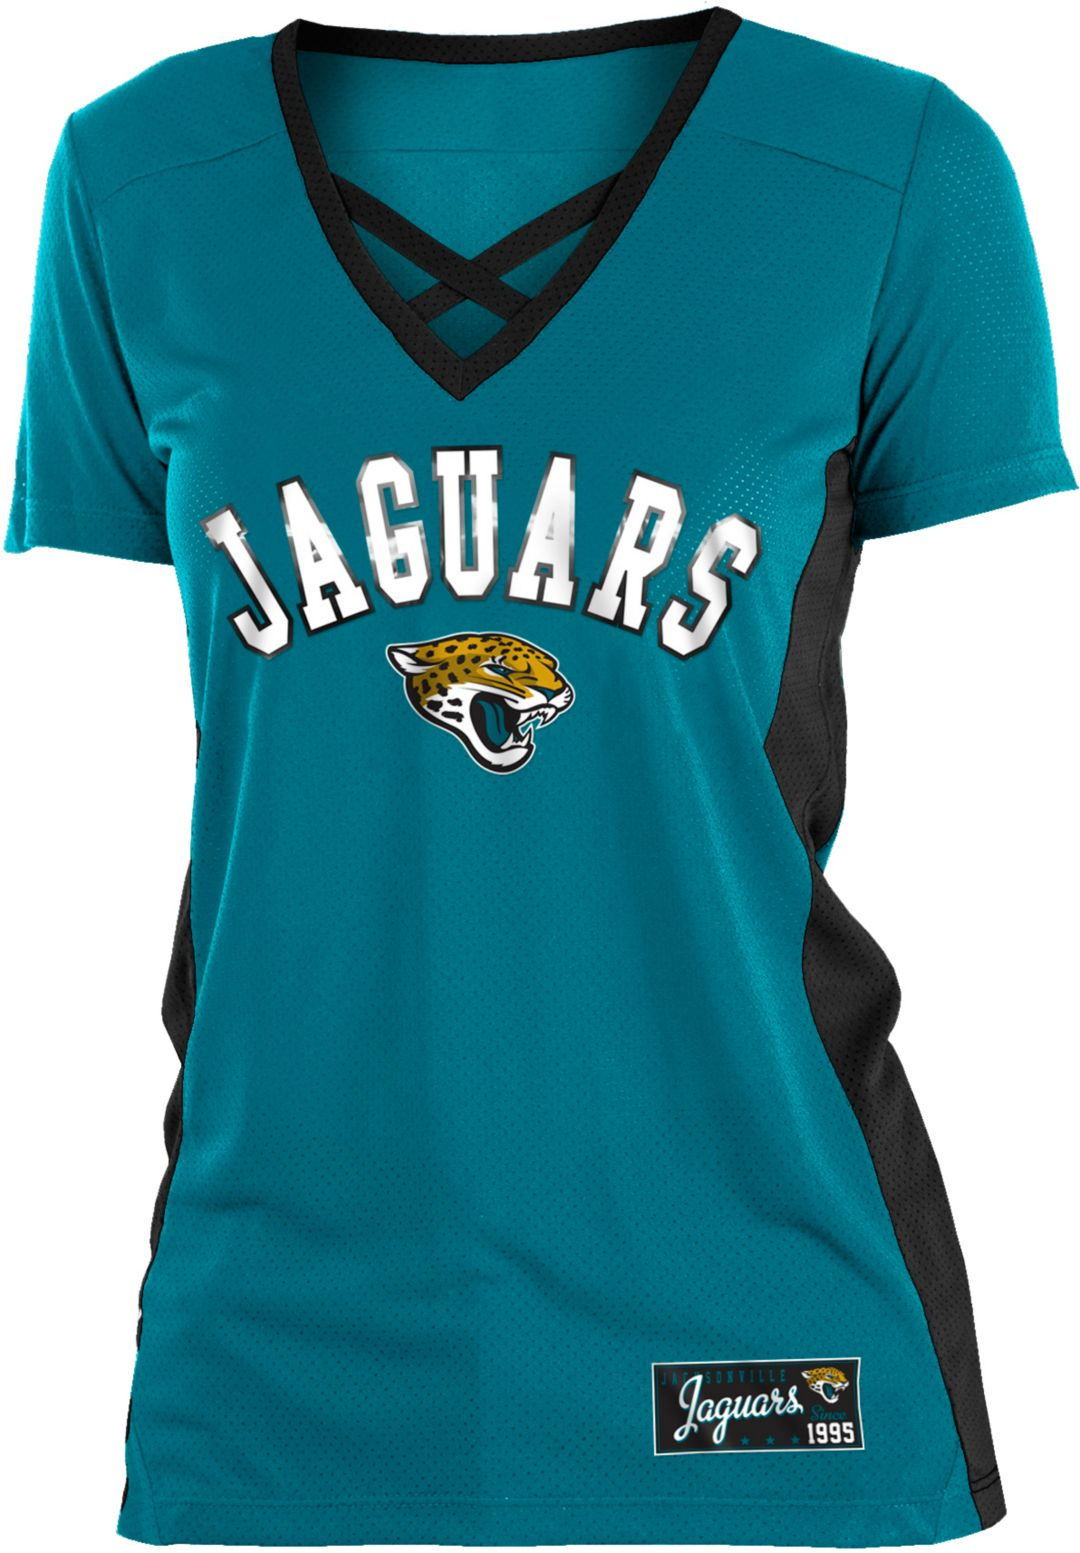 brand new 08b89 1e7fd NFL Team Apparel Women's Jacksonville Jaguars Mesh X Teal T-Shirt